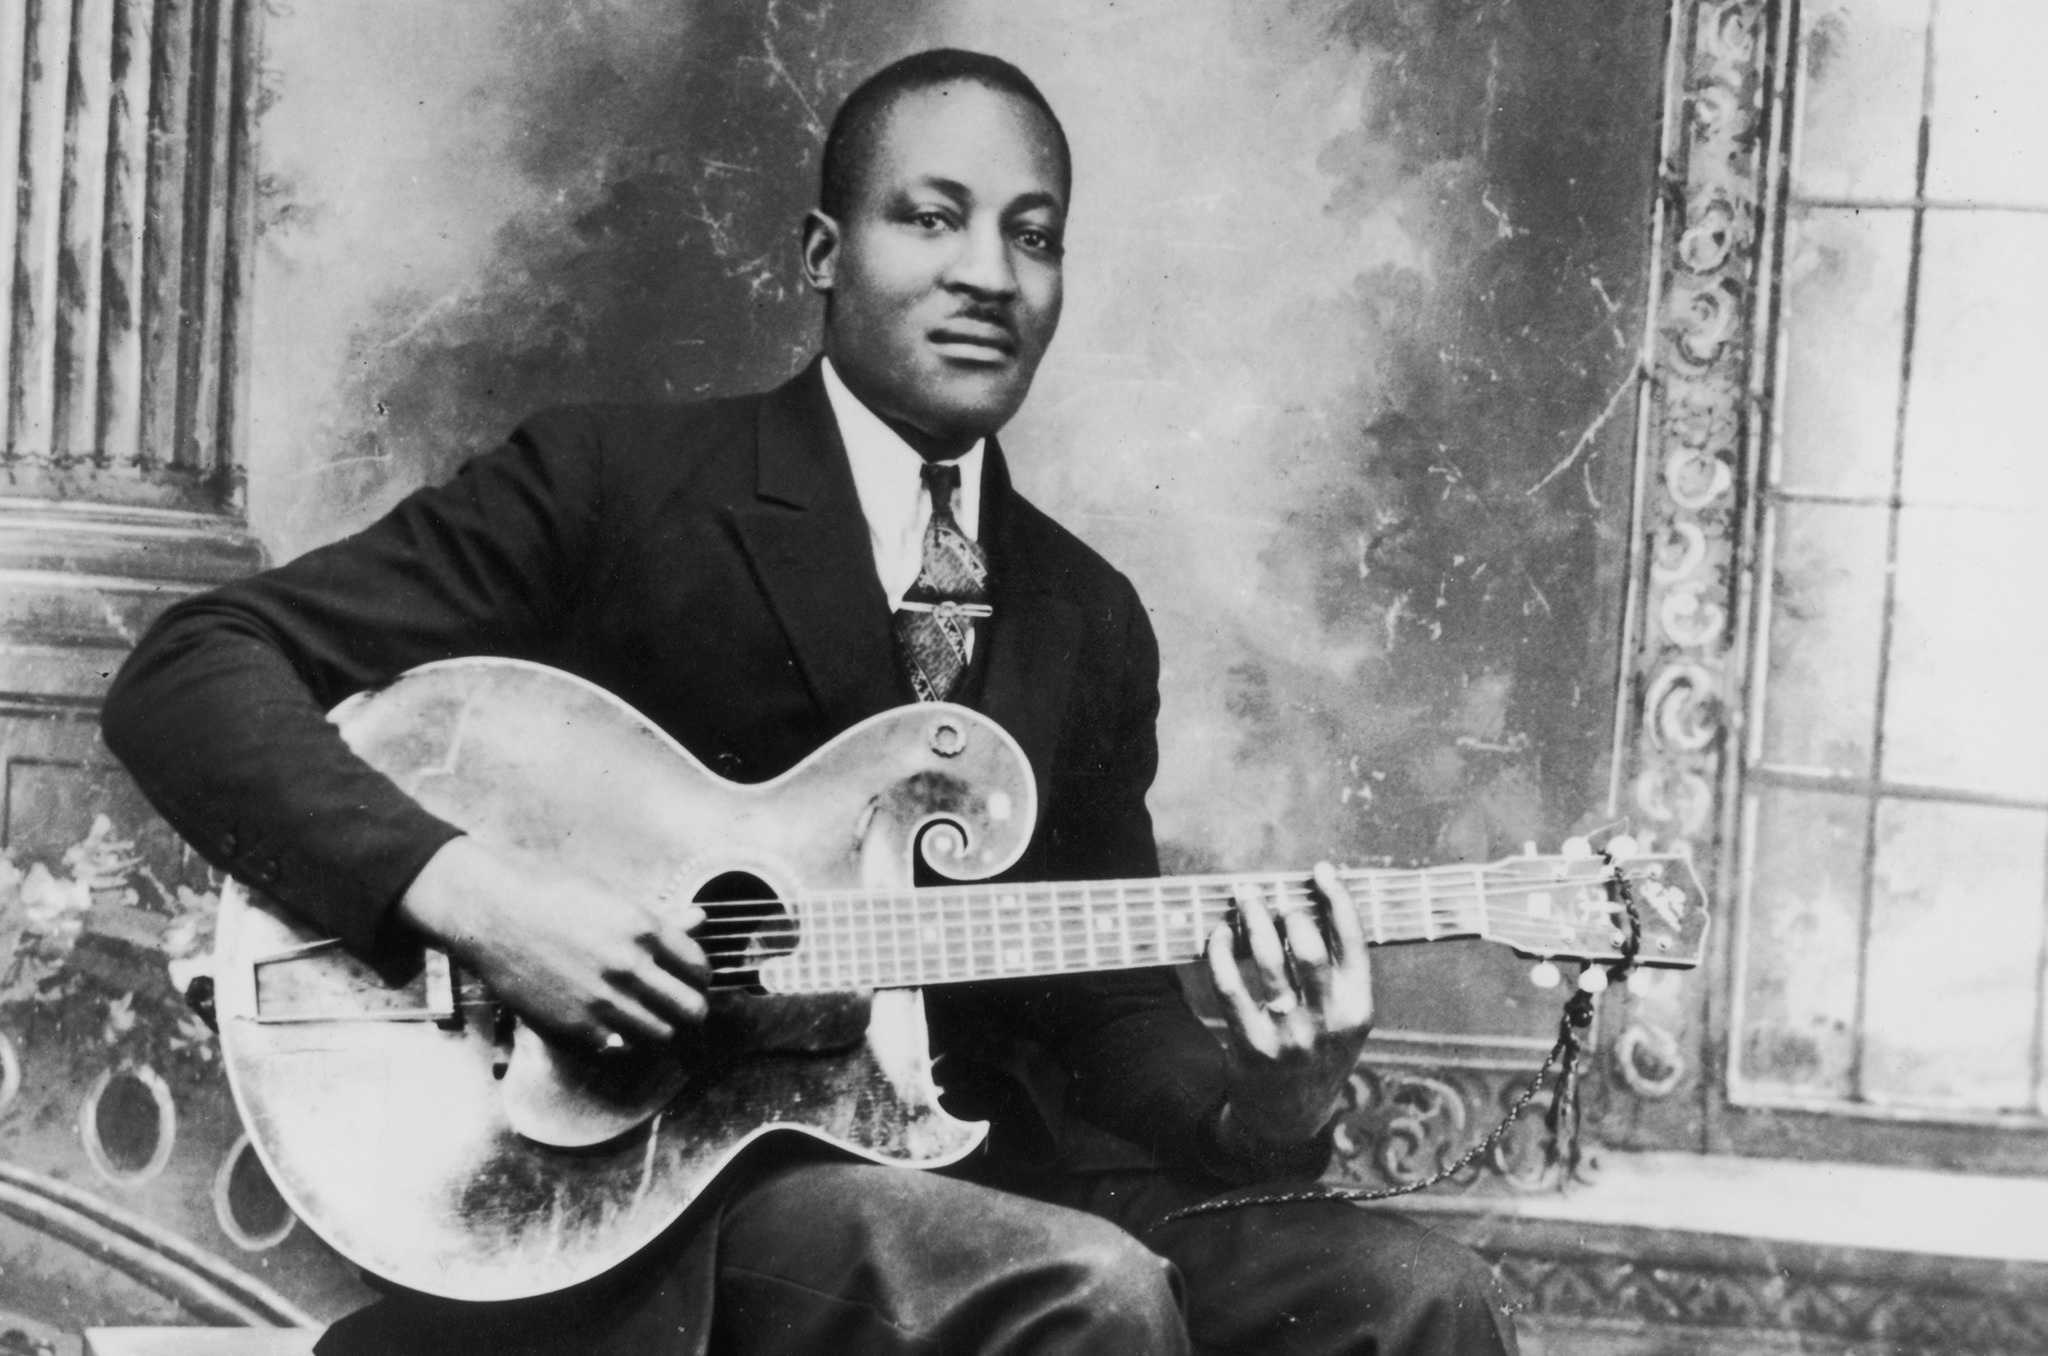 Big Bill Broonzy (1934-1939)